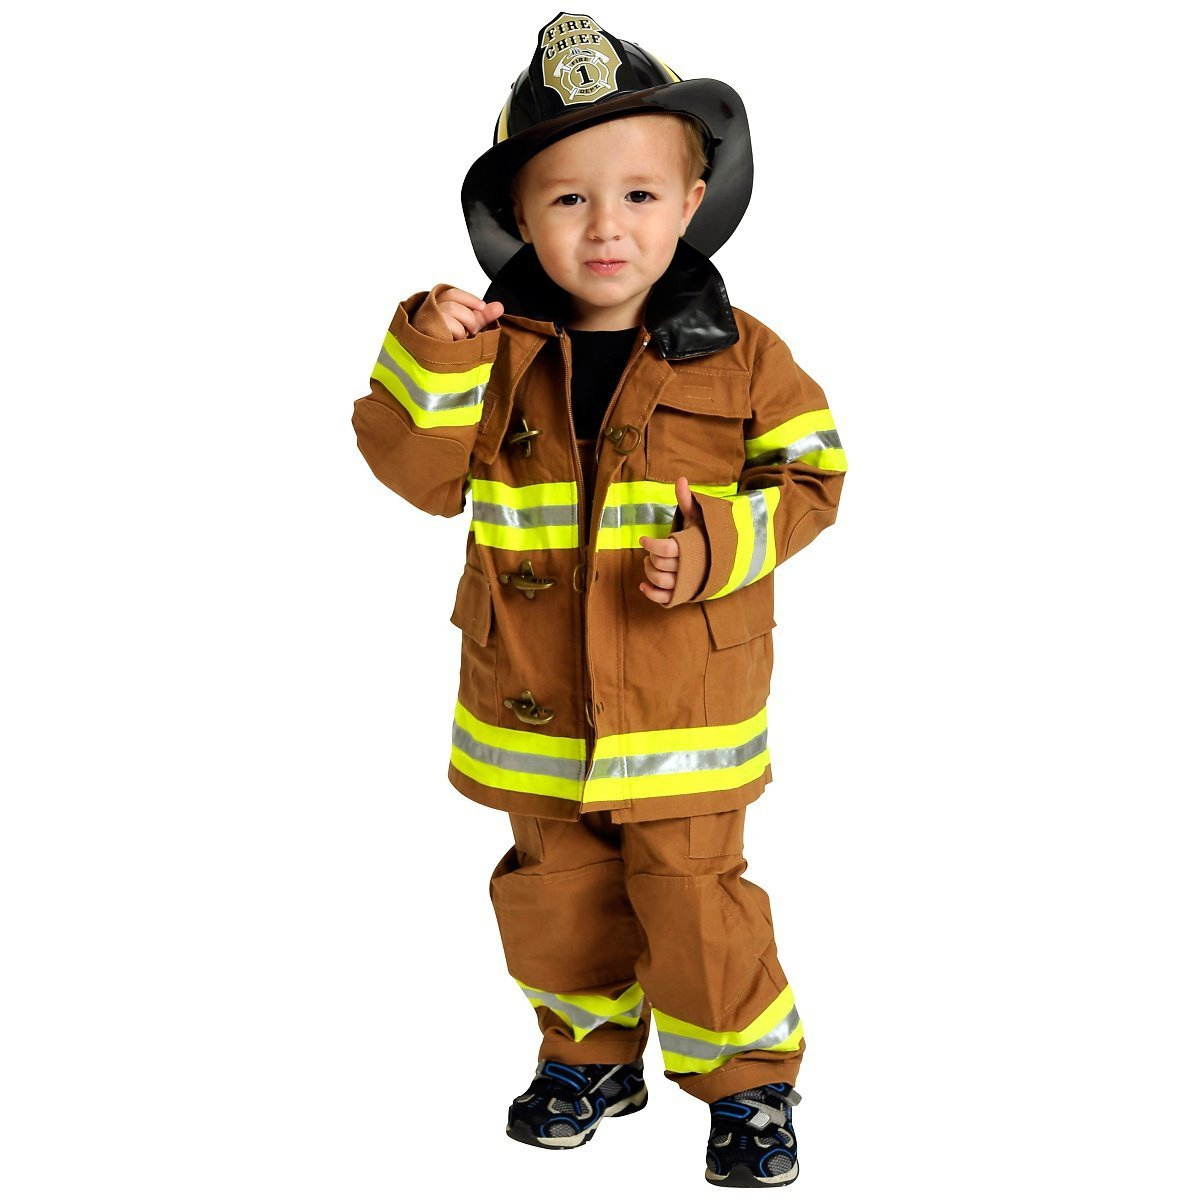 Kids Jr. Fire Fighter Suit Costume with helmet, size 8 10 (tan) by Aeromax